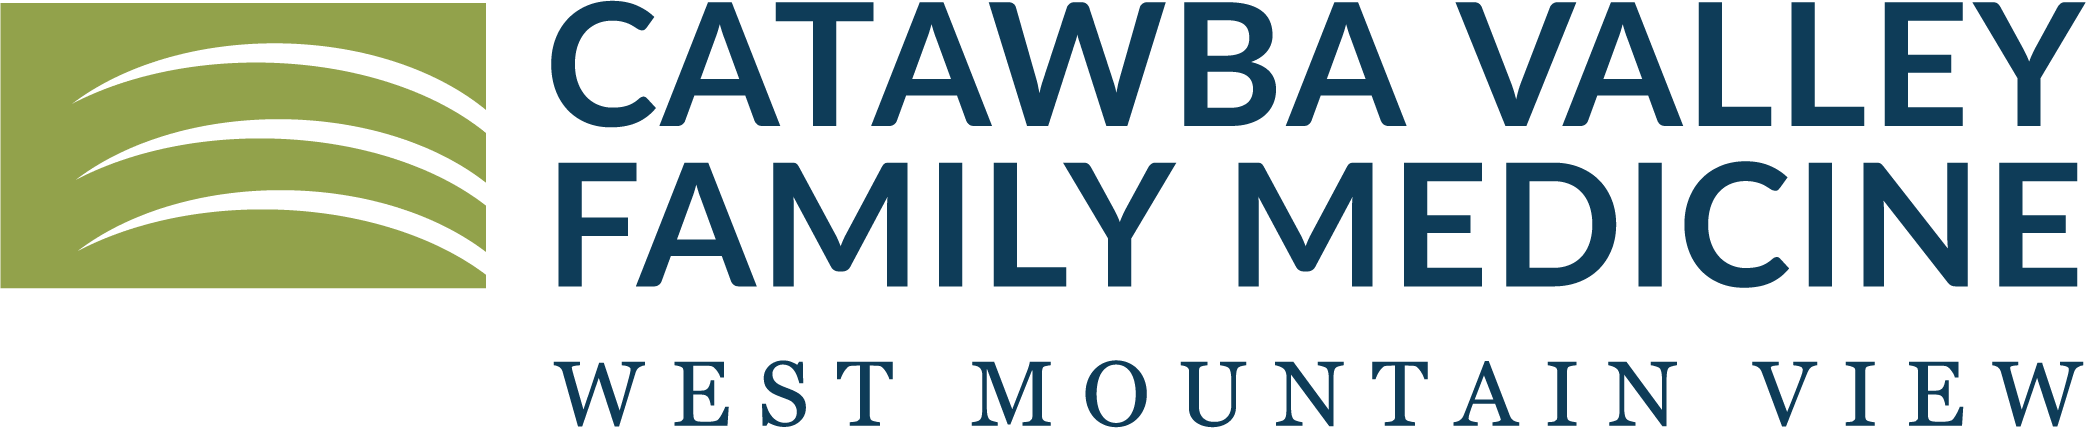 Catawba Valley Family Medicine – West Mountain View